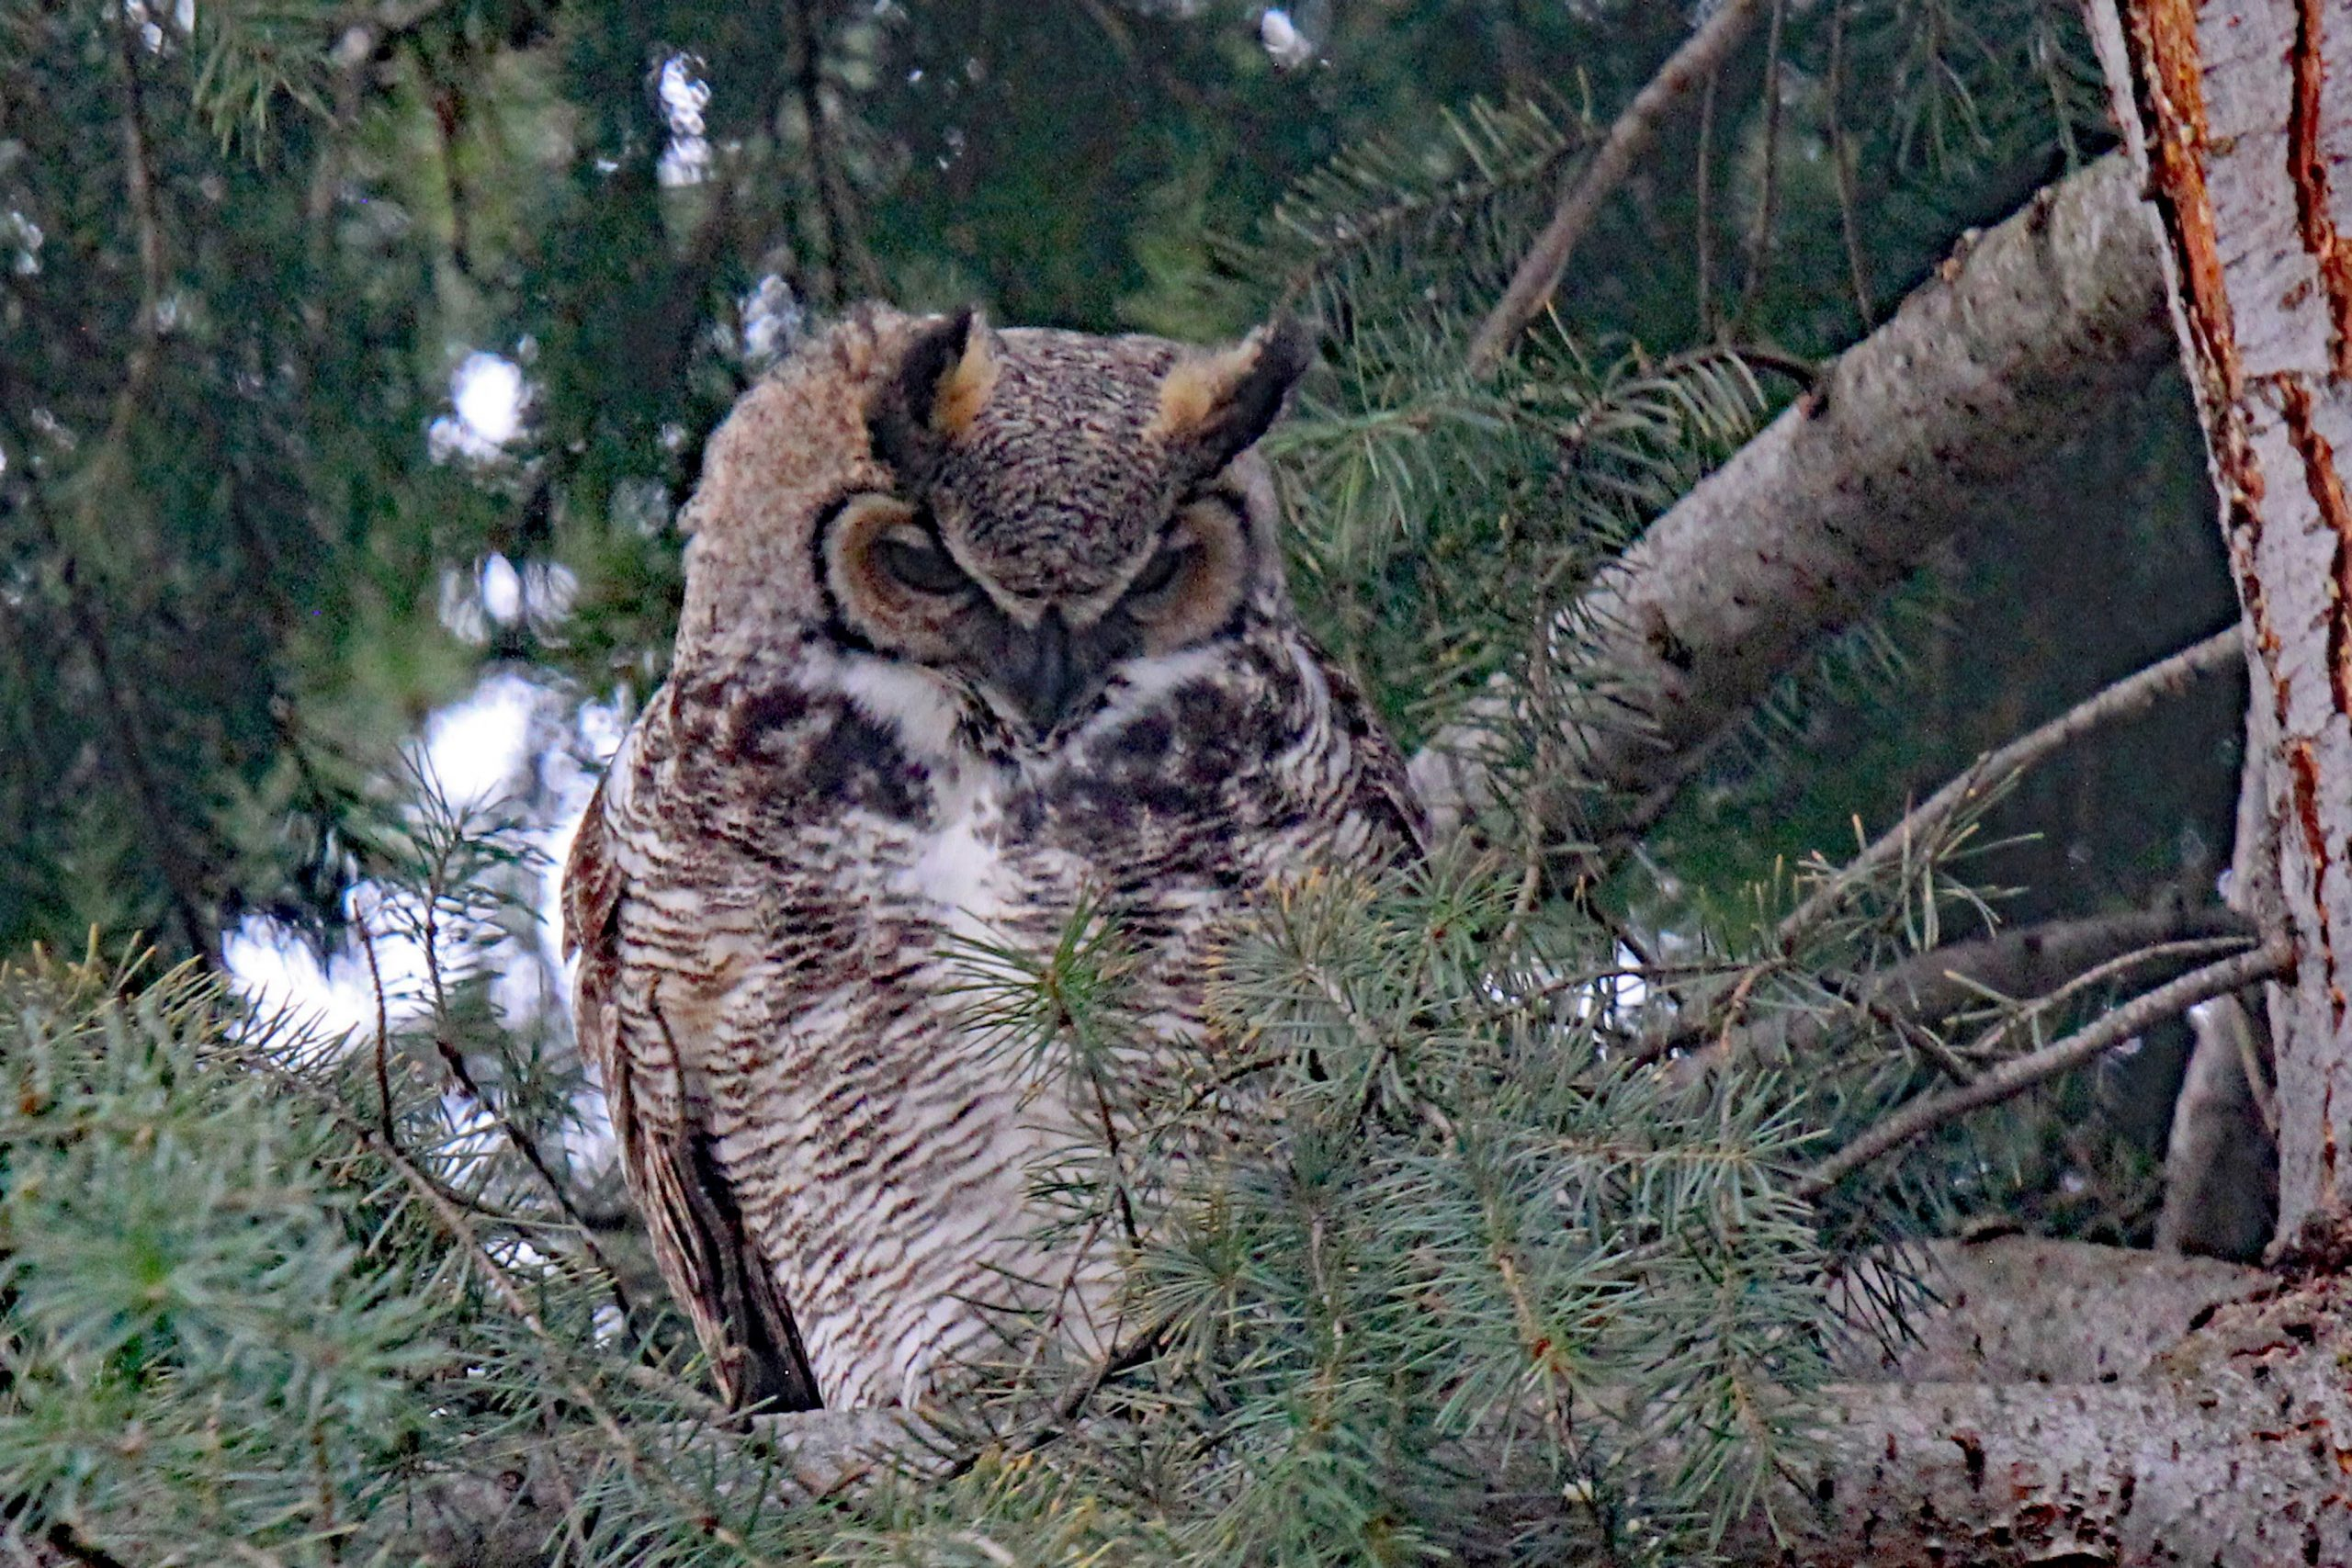 """<p>Young Great Horned Owl (<em>Bubo virginianus</em>), Coldstream, BC</p><p class=""""lightbox-share""""><span>Share: </span><a class=""""lightbox-fb"""" href=""""javascript:void(0);"""">Facebook</a><a class=""""lightbox-twit"""" href=""""https://twitter.com/home?status=I%20voted%20for%20Watch%20Out%20in%20the%20Cornice%20Calendar%20Contest.%20Choose%20your%20favourite%206%20photos:%20http://ow.ly/yCSmZ"""" target=""""_blank"""">Twitter</a></p><input type=hidden class=voteid value=2017 />"""